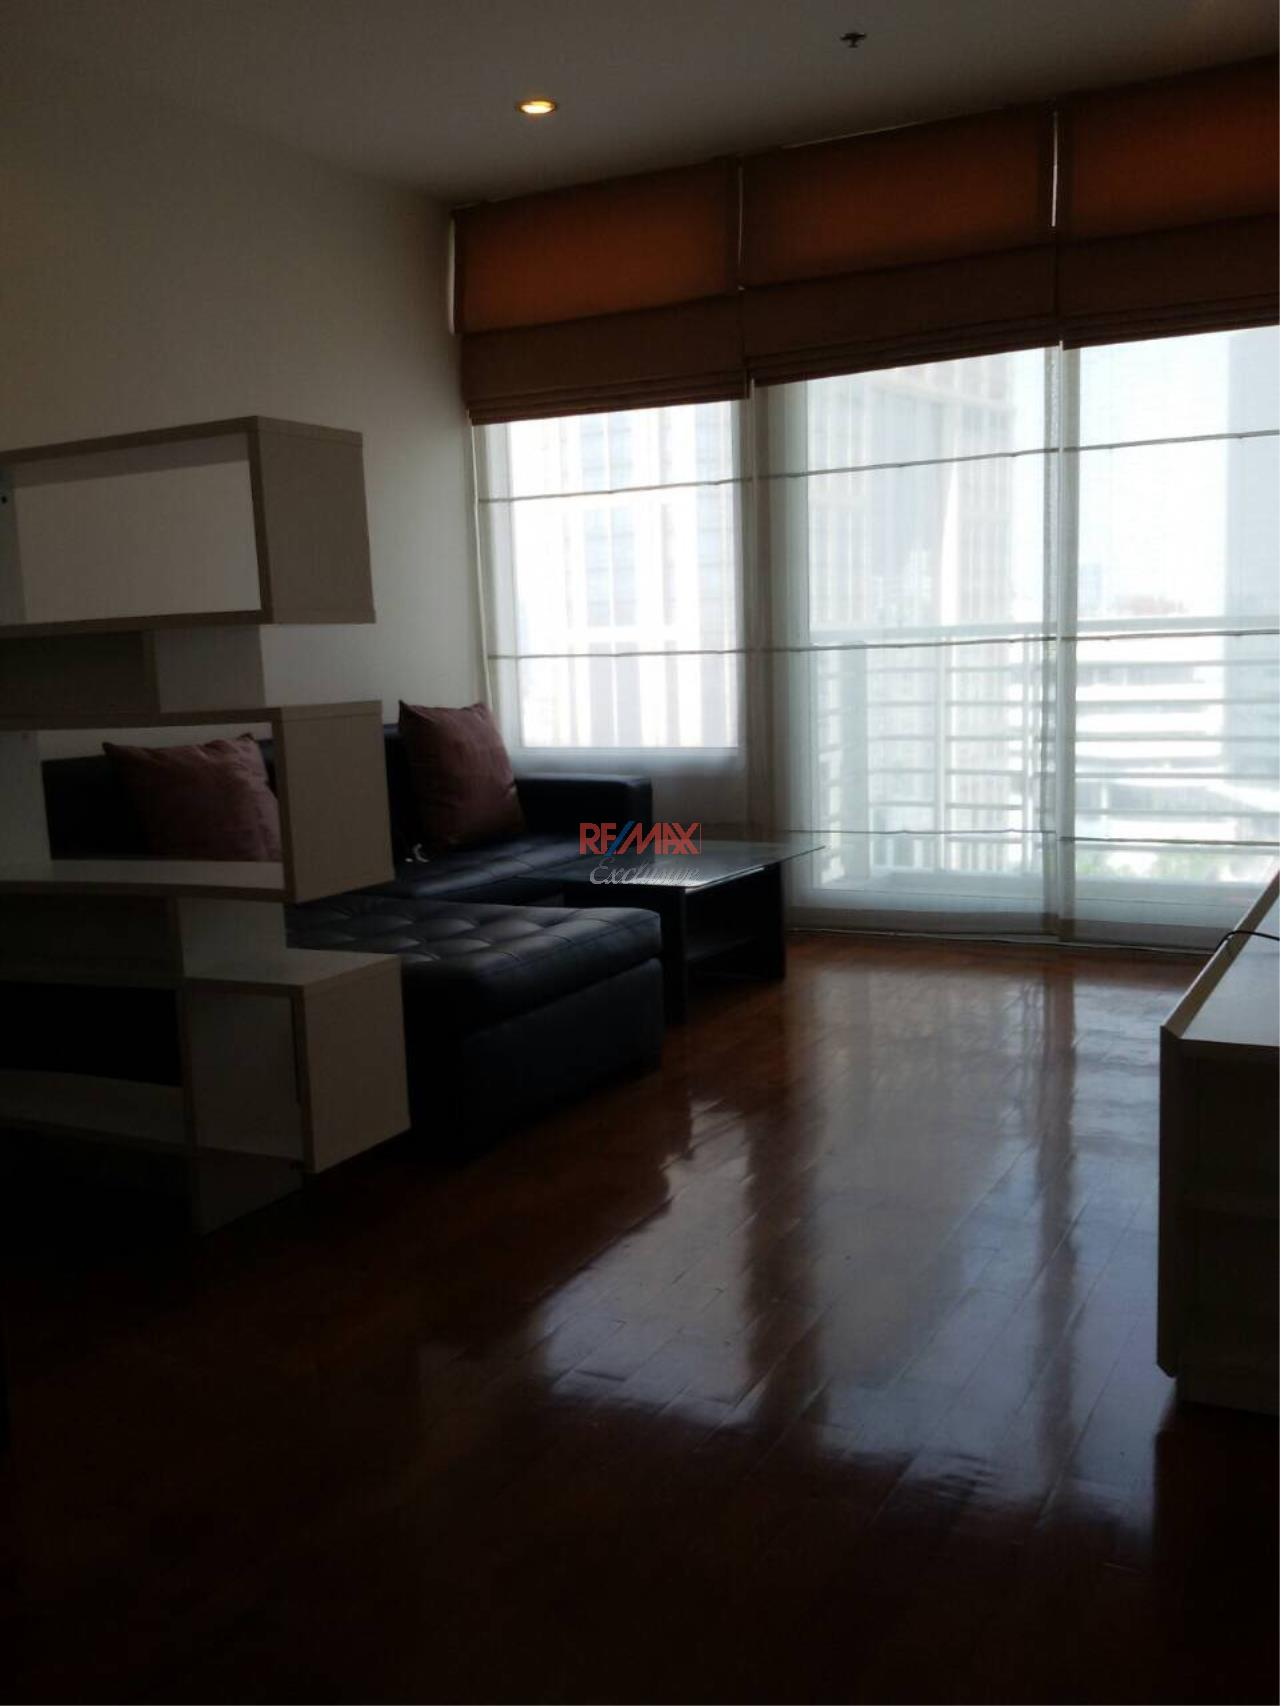 RE/MAX Exclusive Agency's SIRI RESIDENCE, Sukhumvit 24, 1 Bedroom, 60 Sqm. Fully-Furnished, HIGH FLOOR, CIty View, RENT and SALE !!! 18